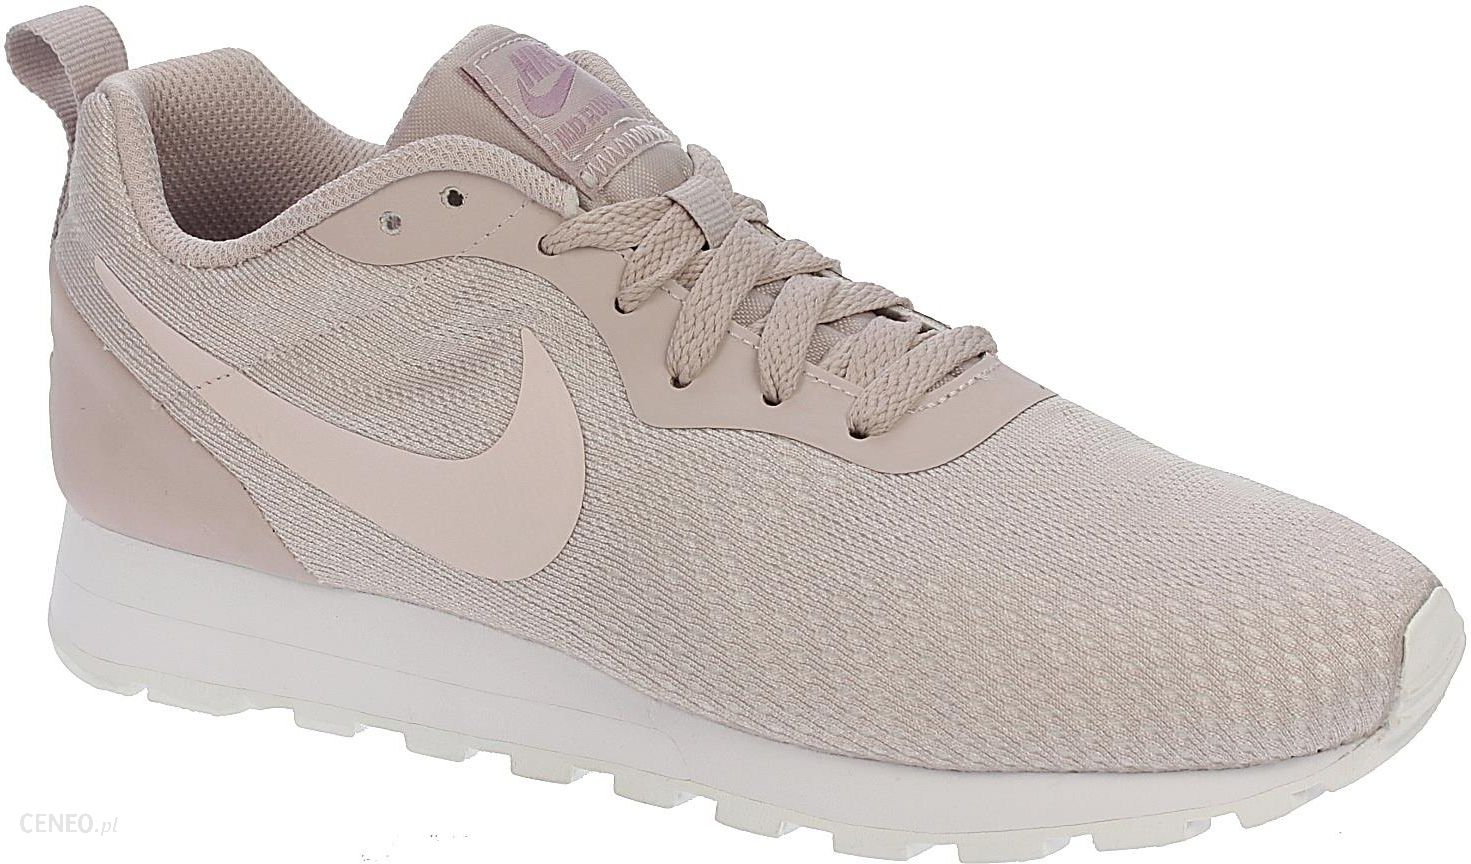 Buty Nike MD Runner 2 Eng Mesh Particle RoseBarely RoseWhite 42 Ceny i opinie Ceneo.pl